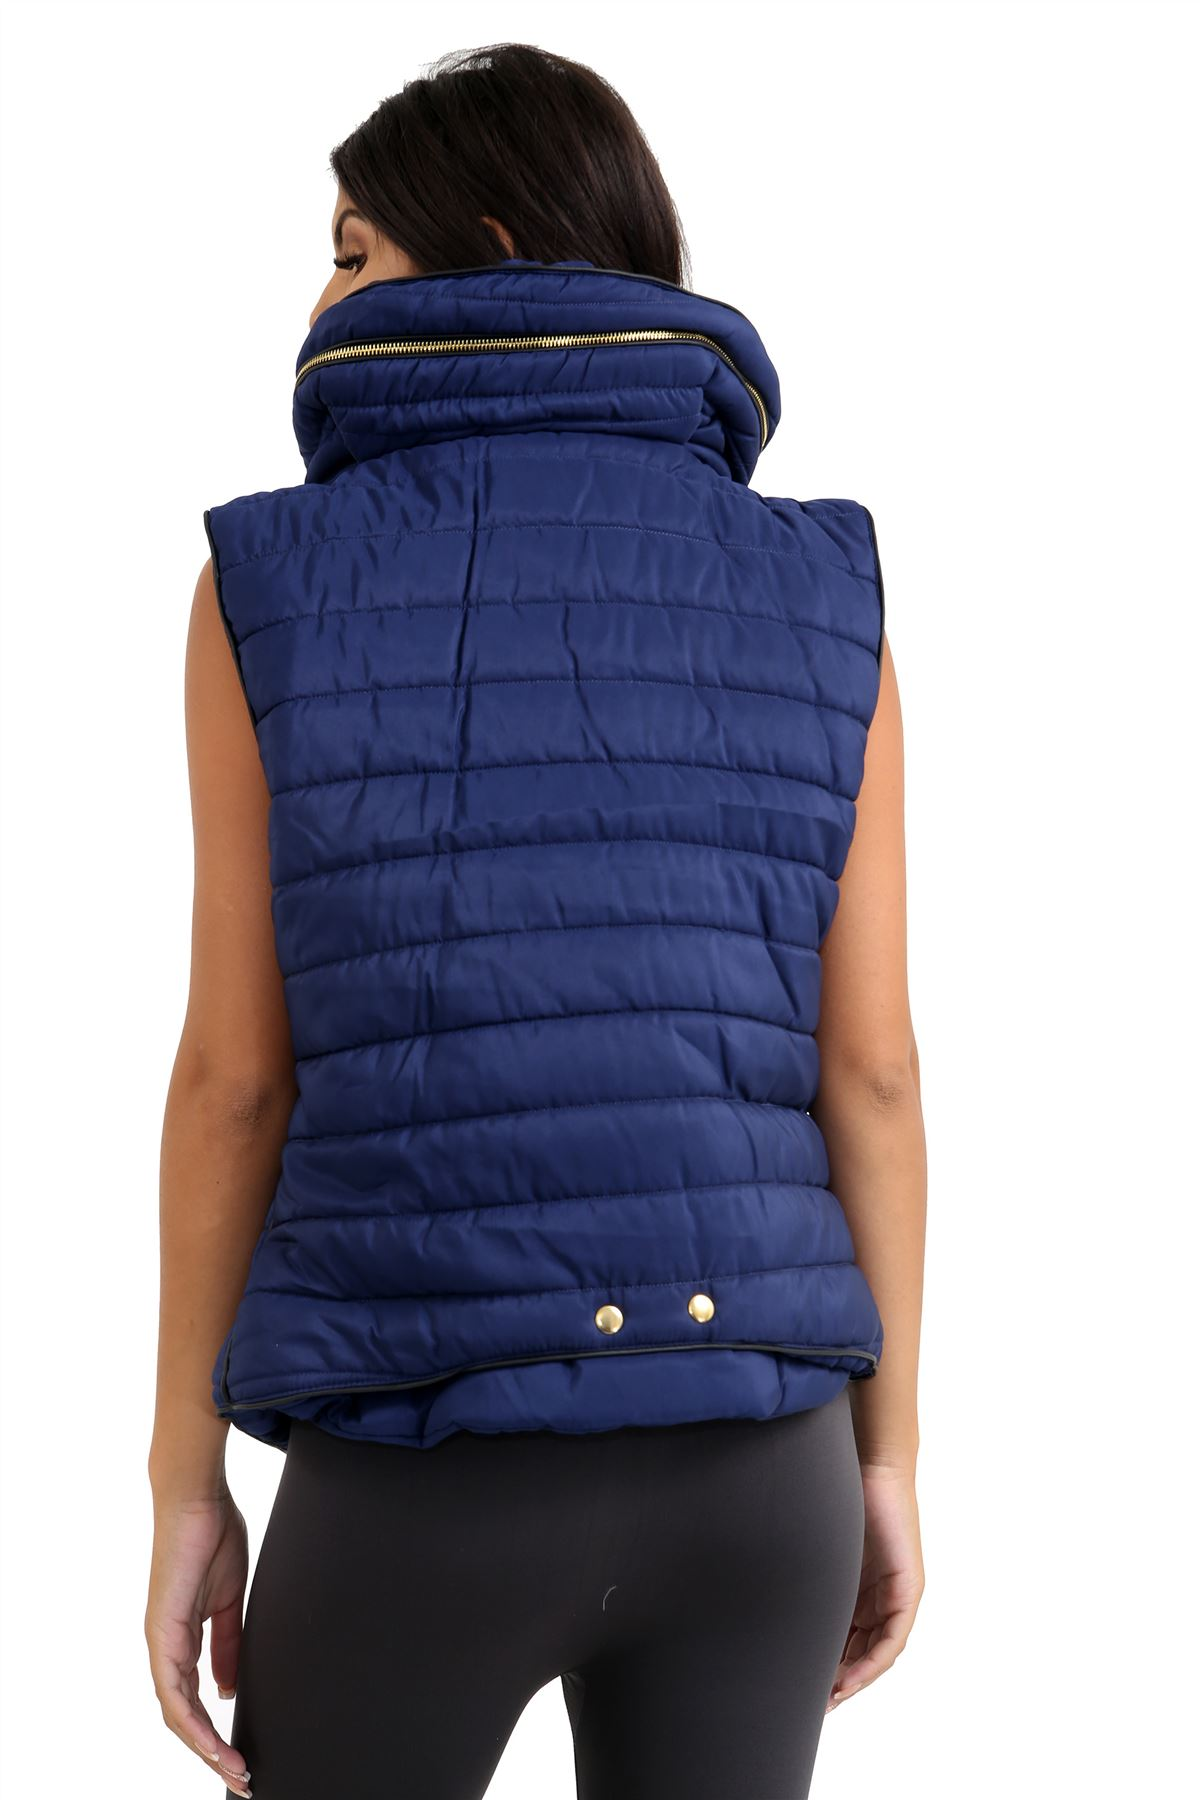 Ladies-Gilet-Quilted-Padded-Body-Warmer-Sleeveless-Fur-Collar-Puffer-Jacket-Coat thumbnail 13